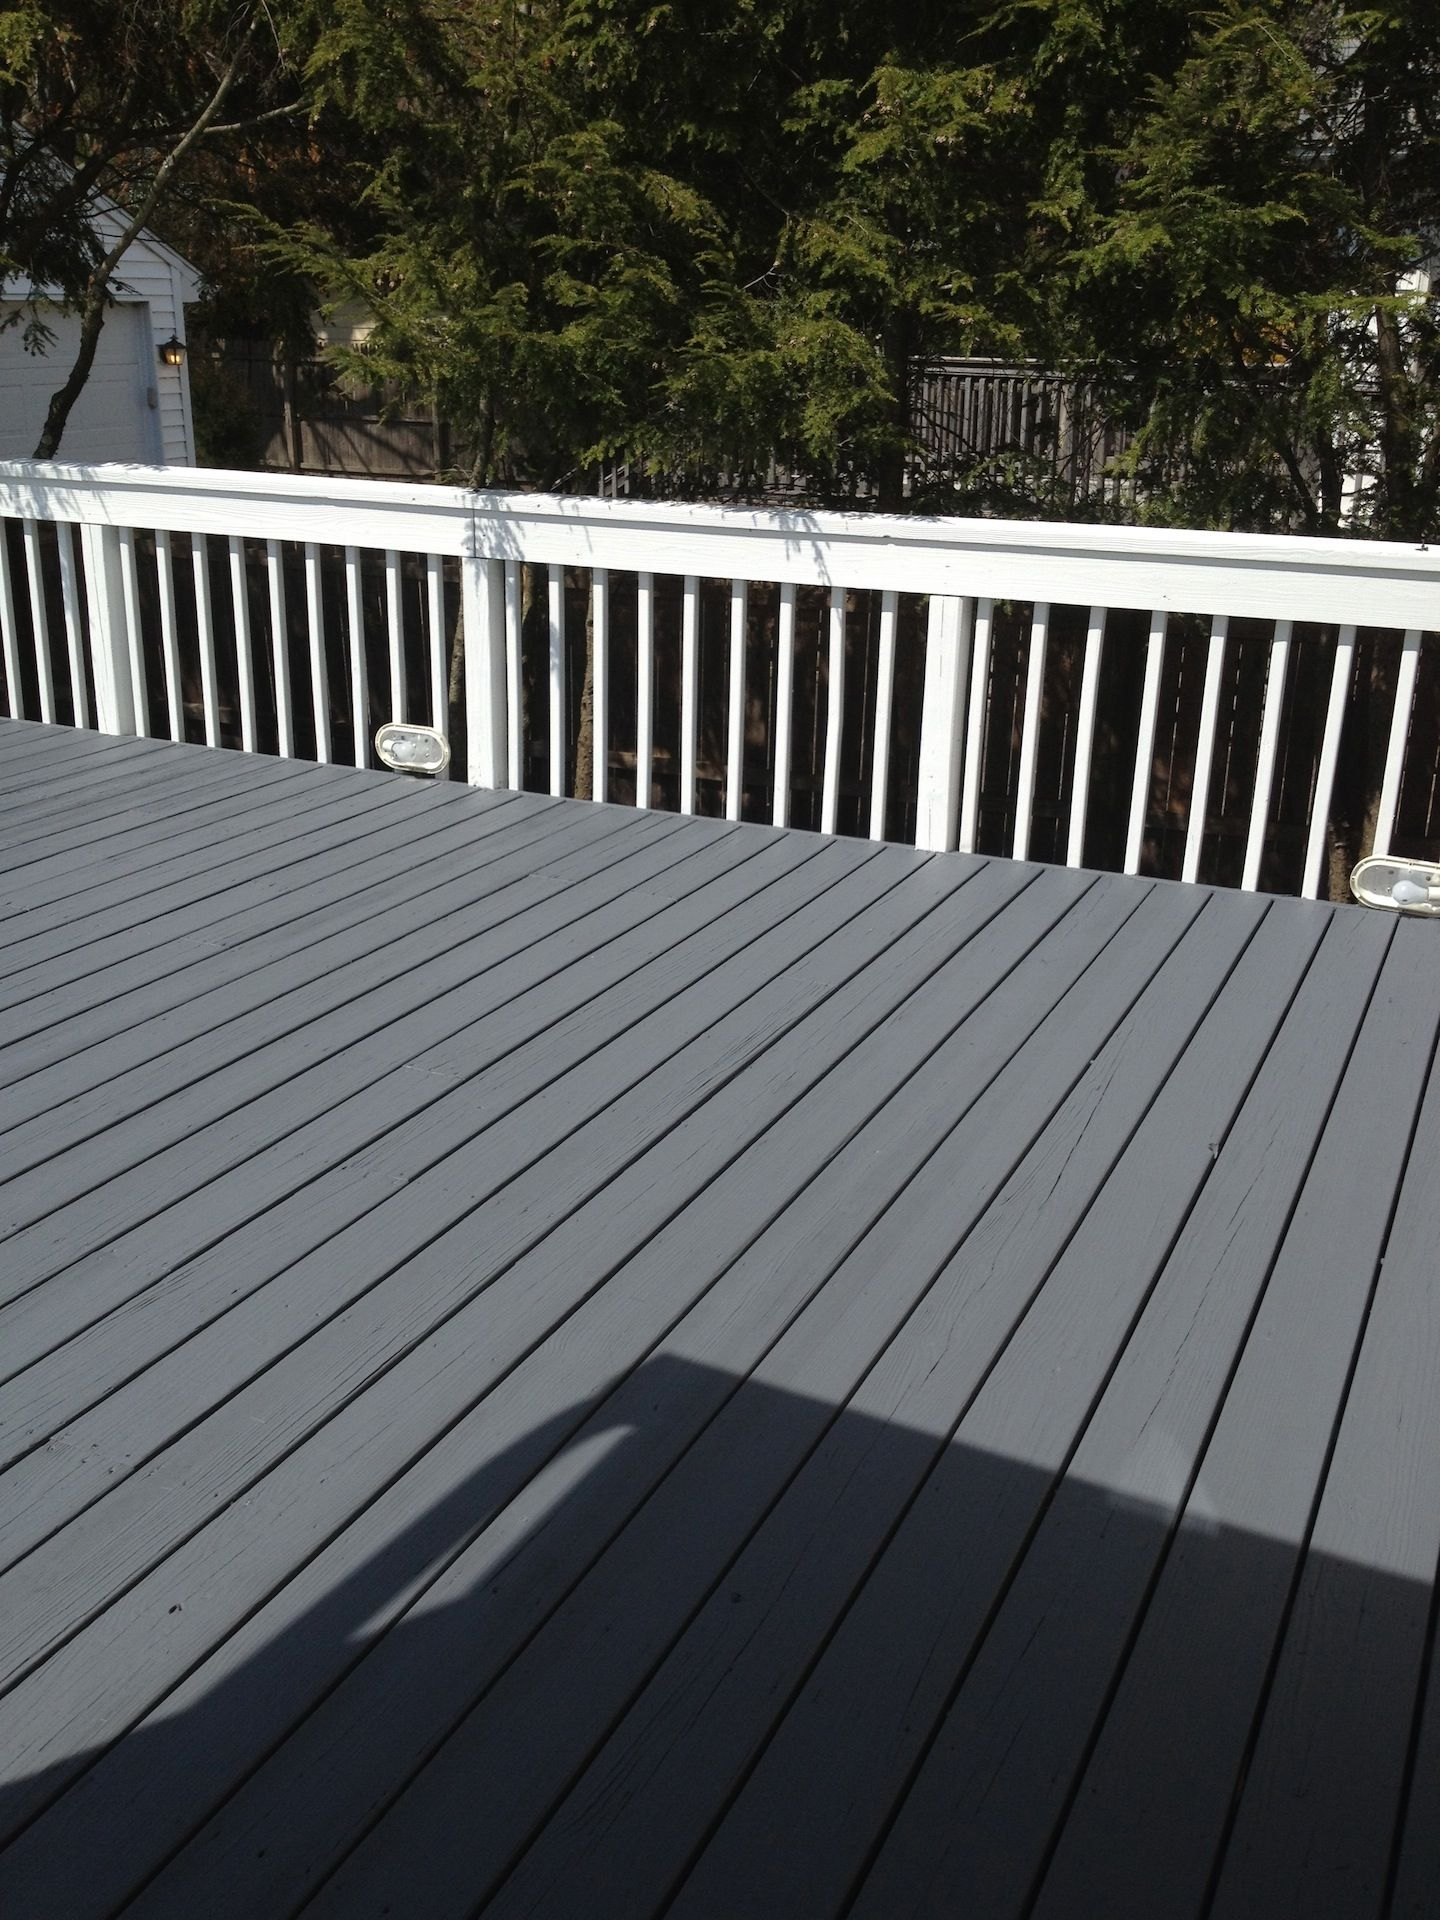 Decks Cabot Exterior Wood Stain Home Depot Cabot Deck Stain Cabot Stain Lowes Deck Stain Colors Staining Deck Deck Colors